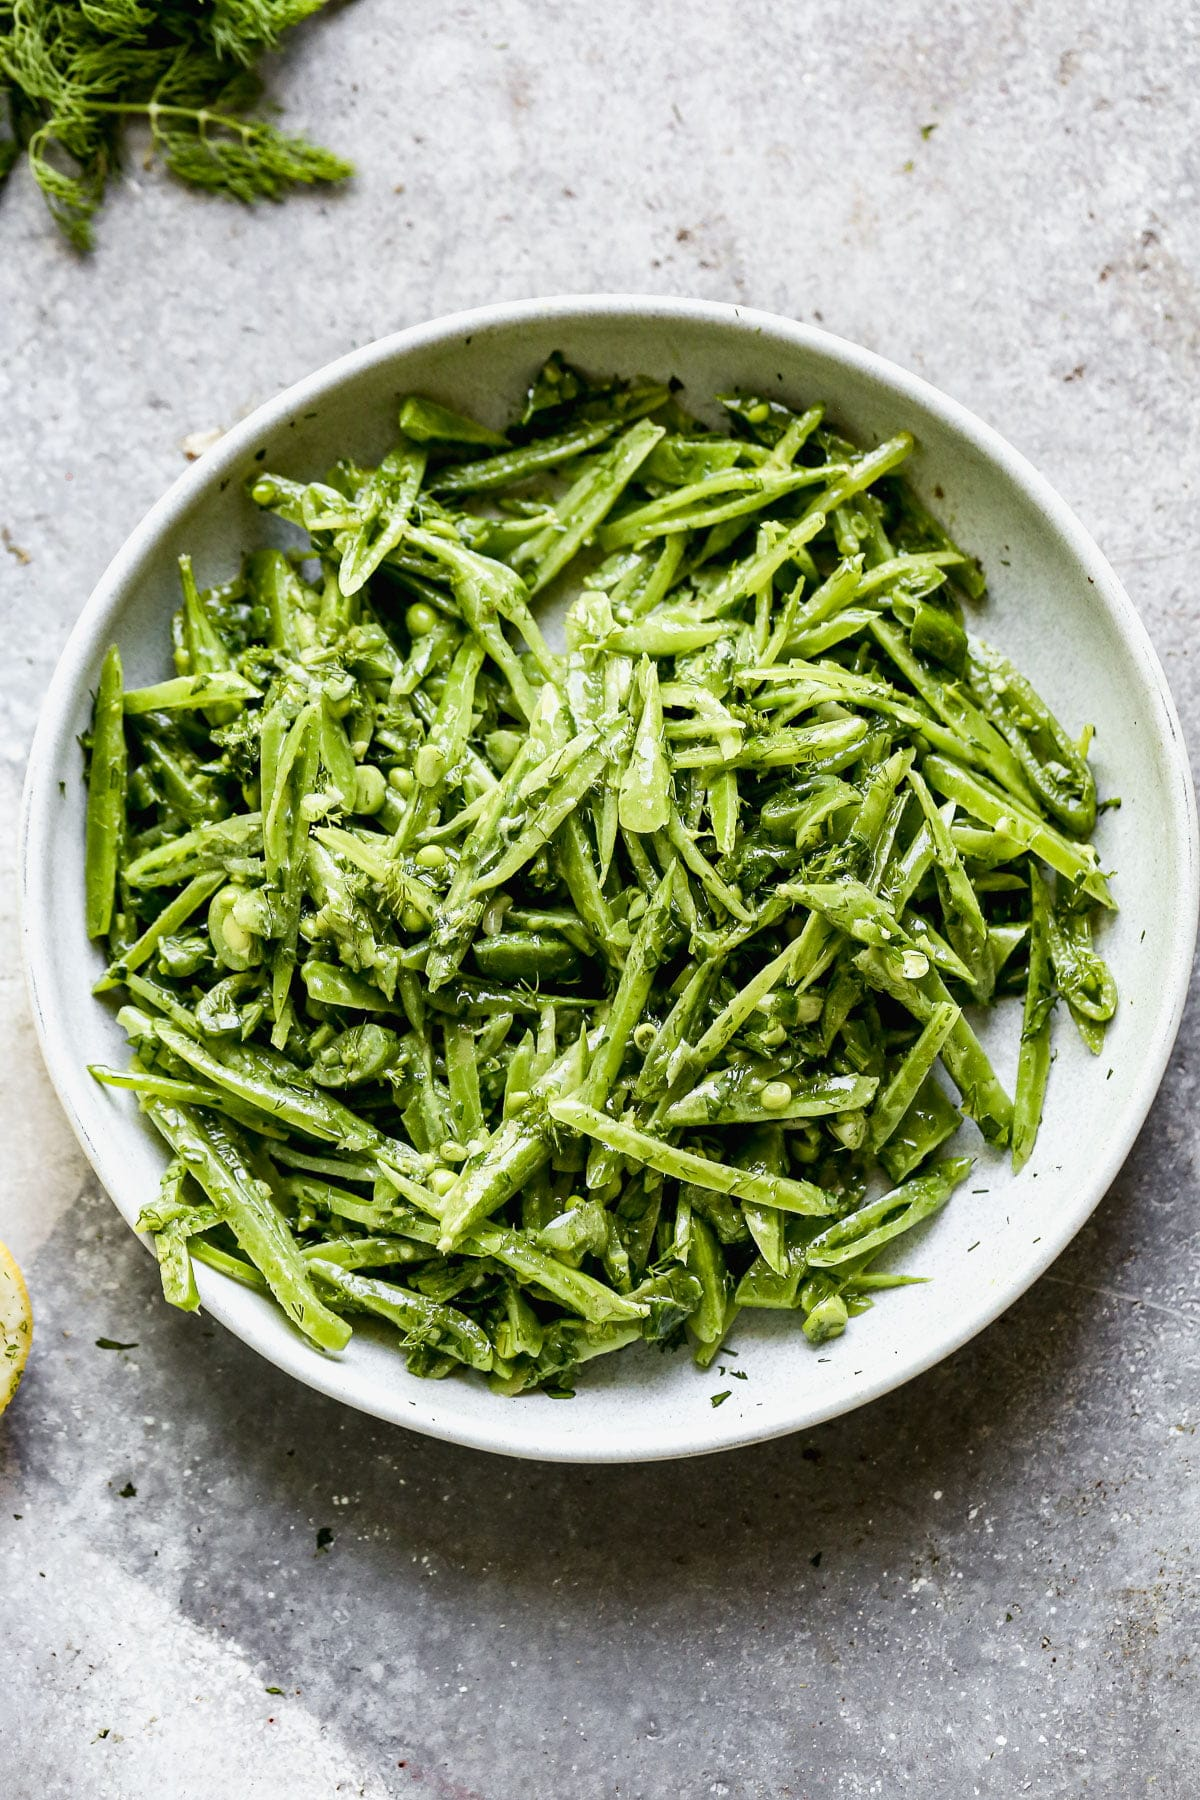 Snap Pea Salad with Dill